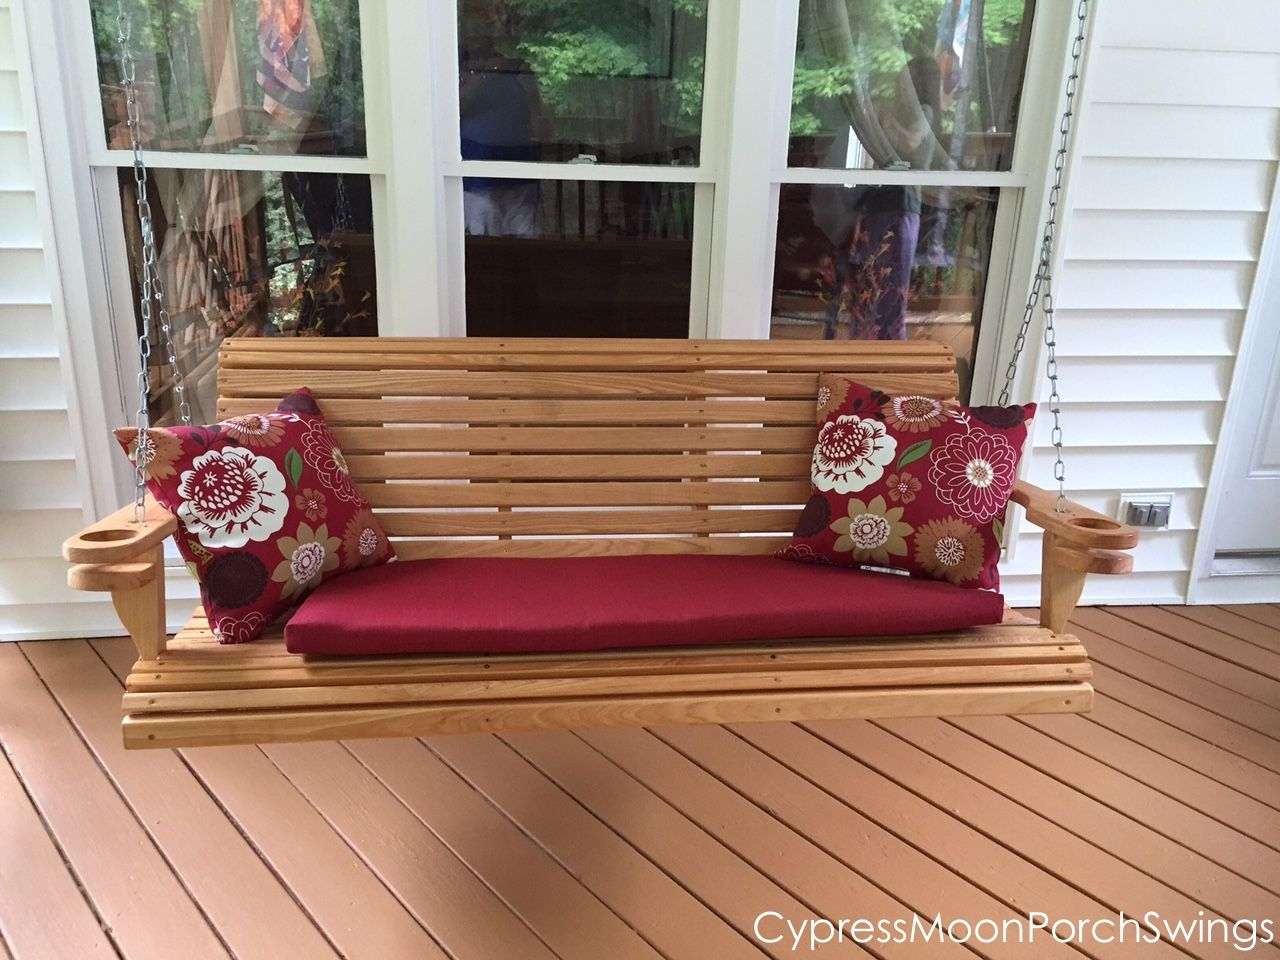 Hereus a ft rollback porch swing that was purchased by the allee